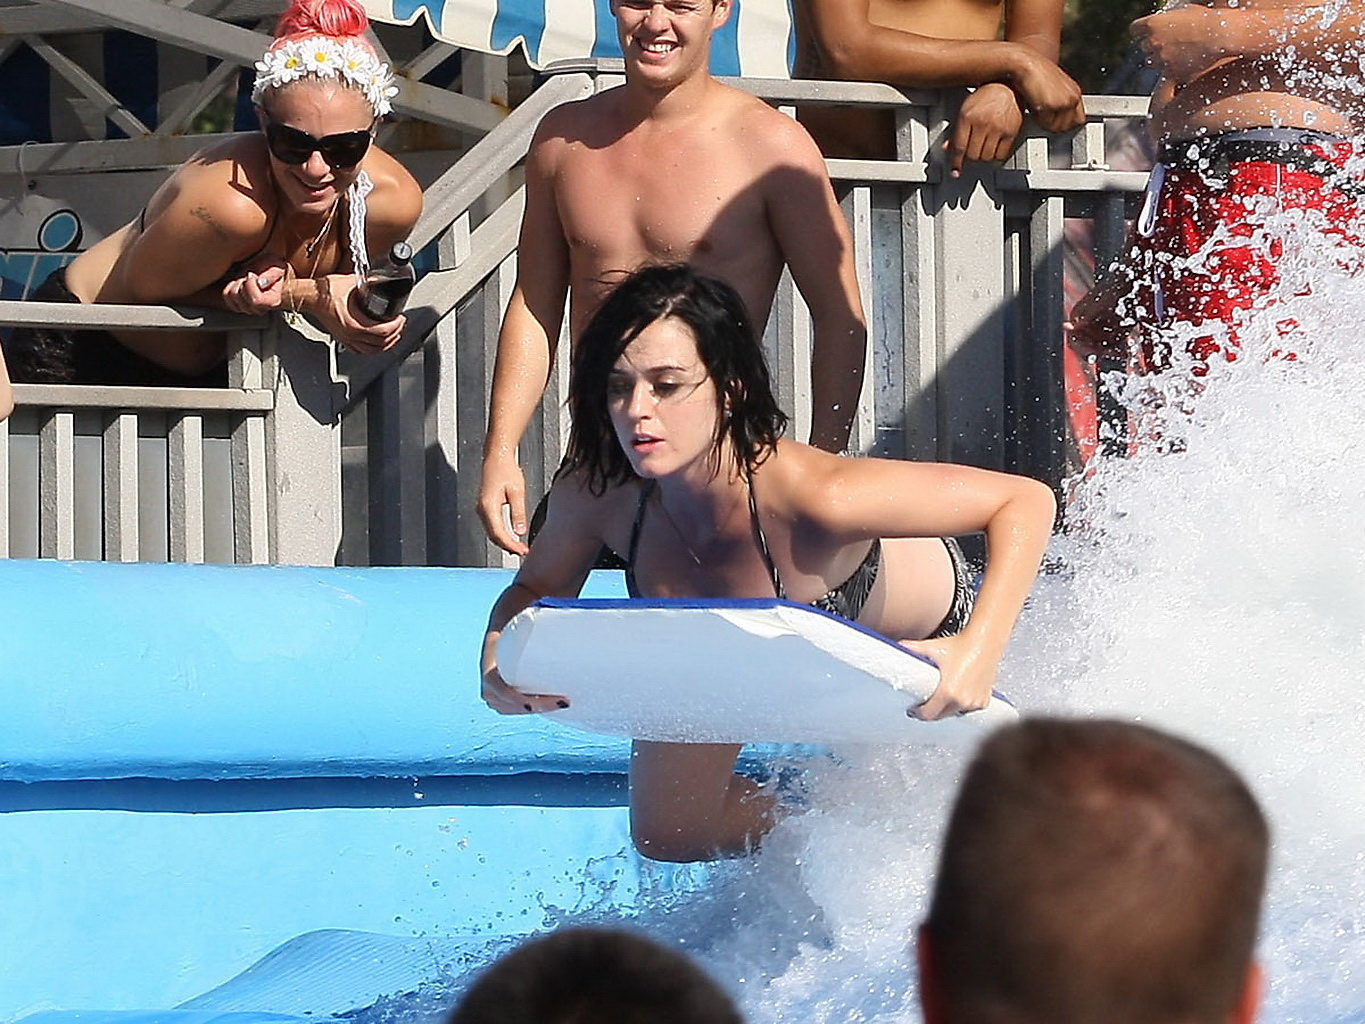 katy perry showing her bare ass caused by bikini bottom falling off at